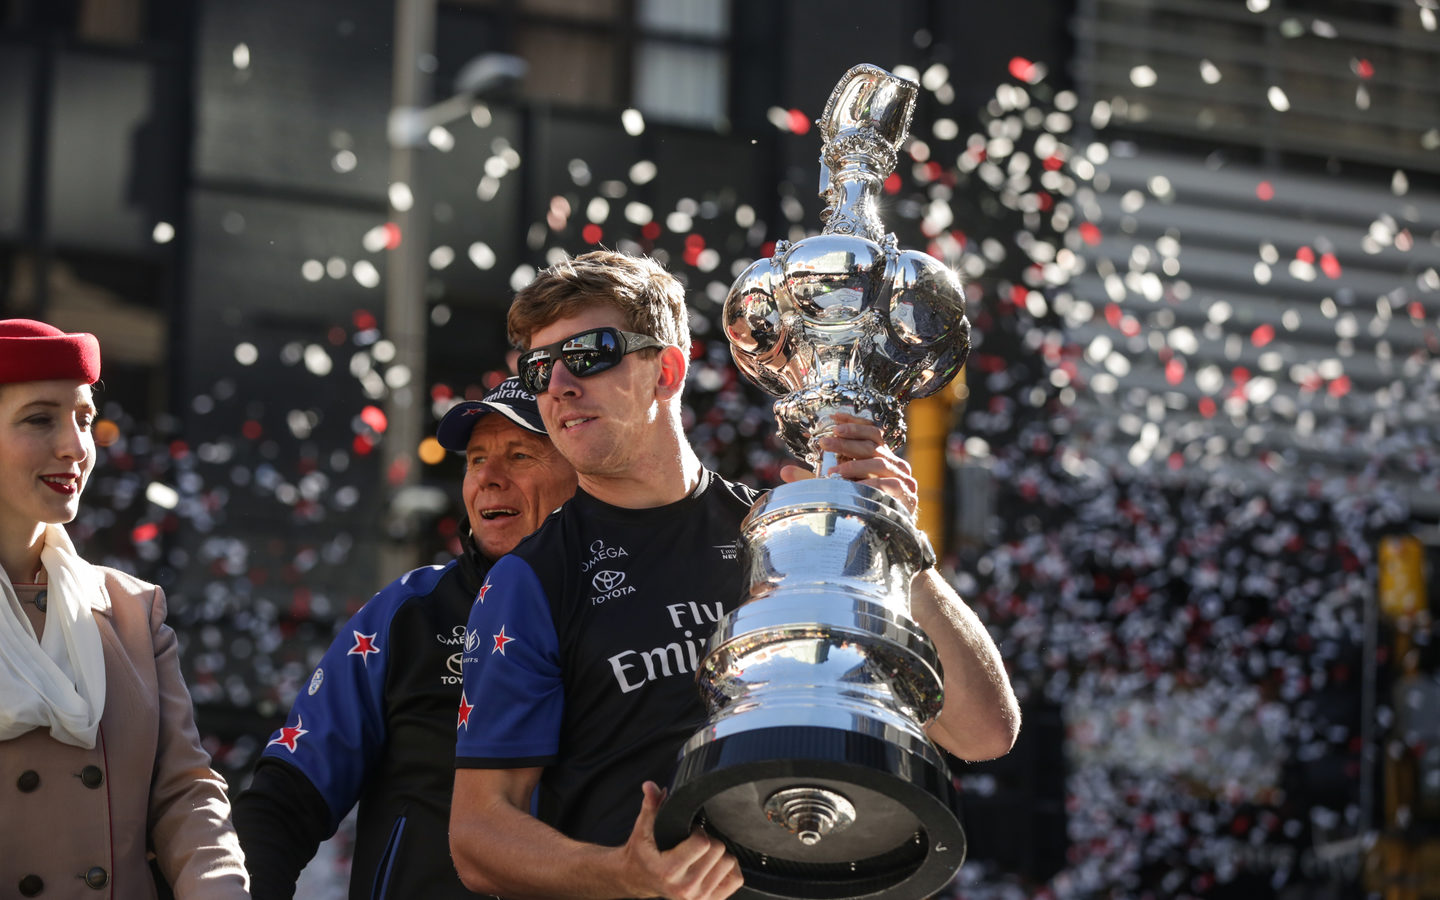 Peter Burling holds the America's Cup during the Wellington victory parade.